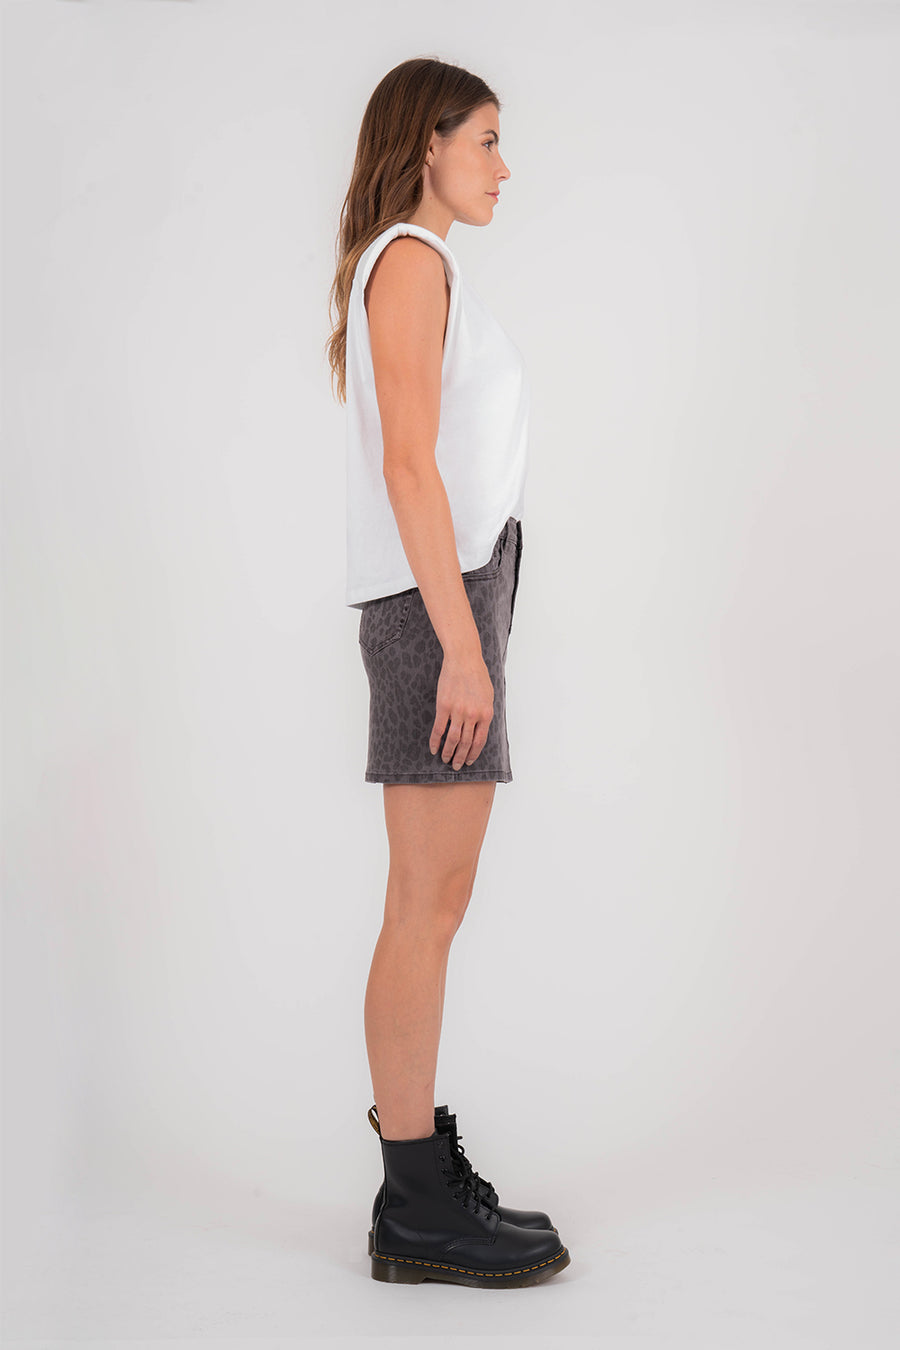 Darcy - Wild Thing animal print skirt